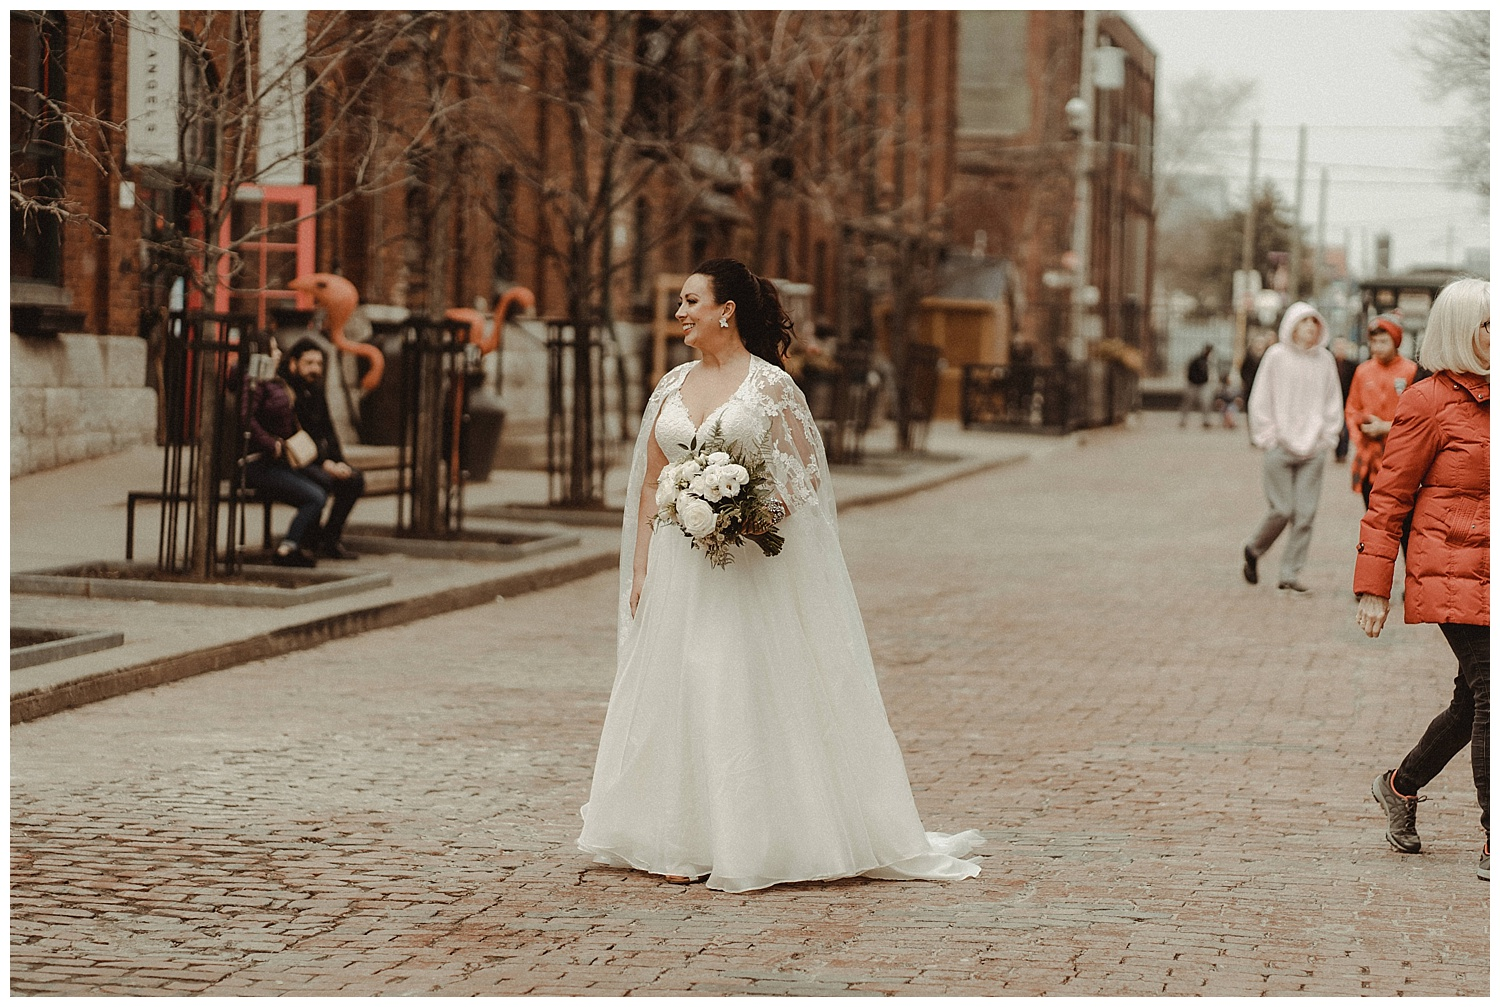 Katie Marie Photography | Archeo Wedding Arta Gallery Wedding | Distillery District Wedding | Toronto Wedding Photographer | Hamilton Toronto Ontario Wedding Photographer |_0001.jpg